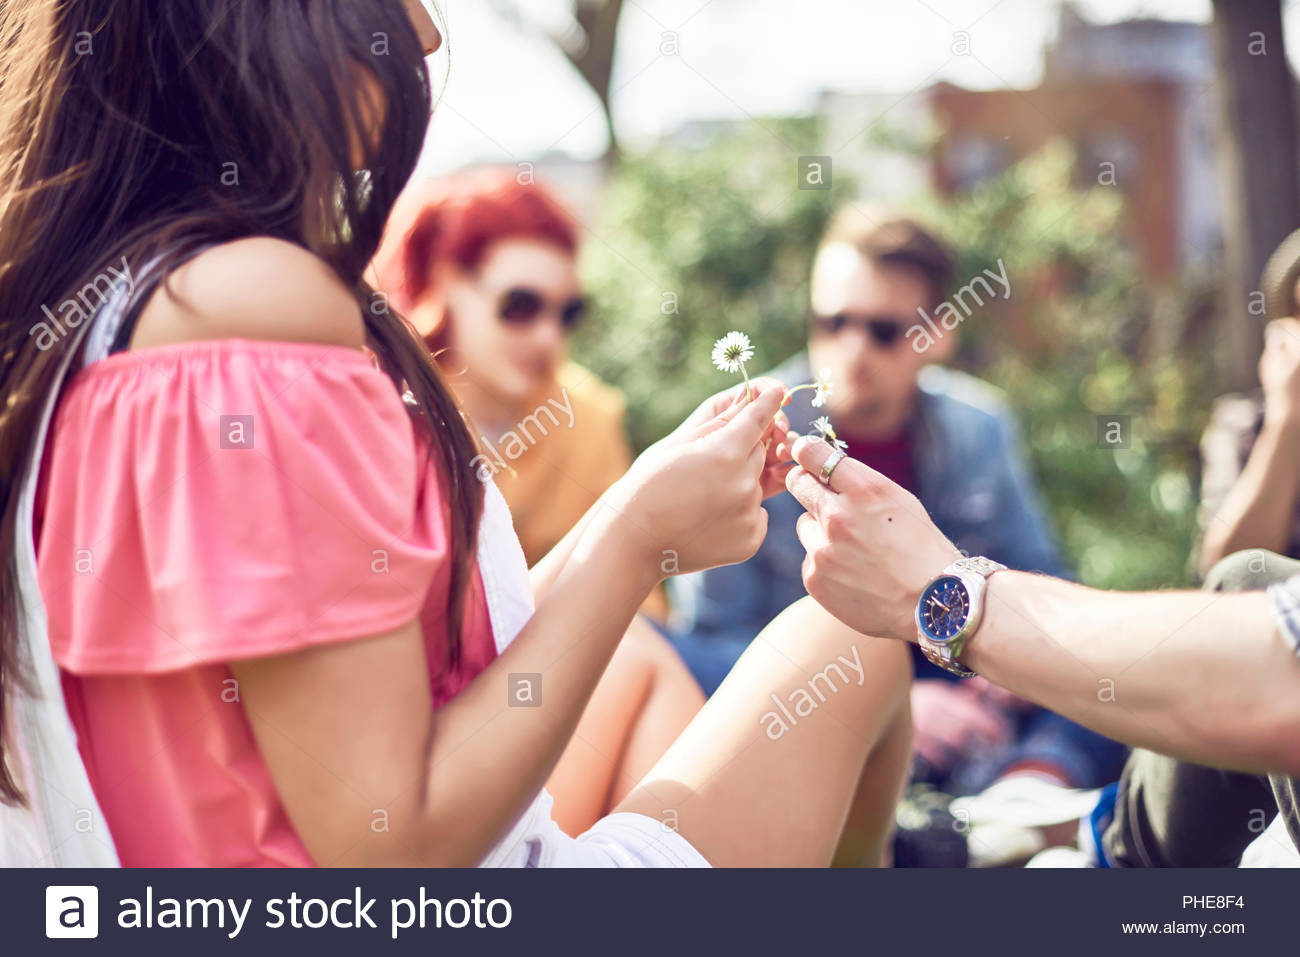 Teenage couple picking daisies in park - Stock Image